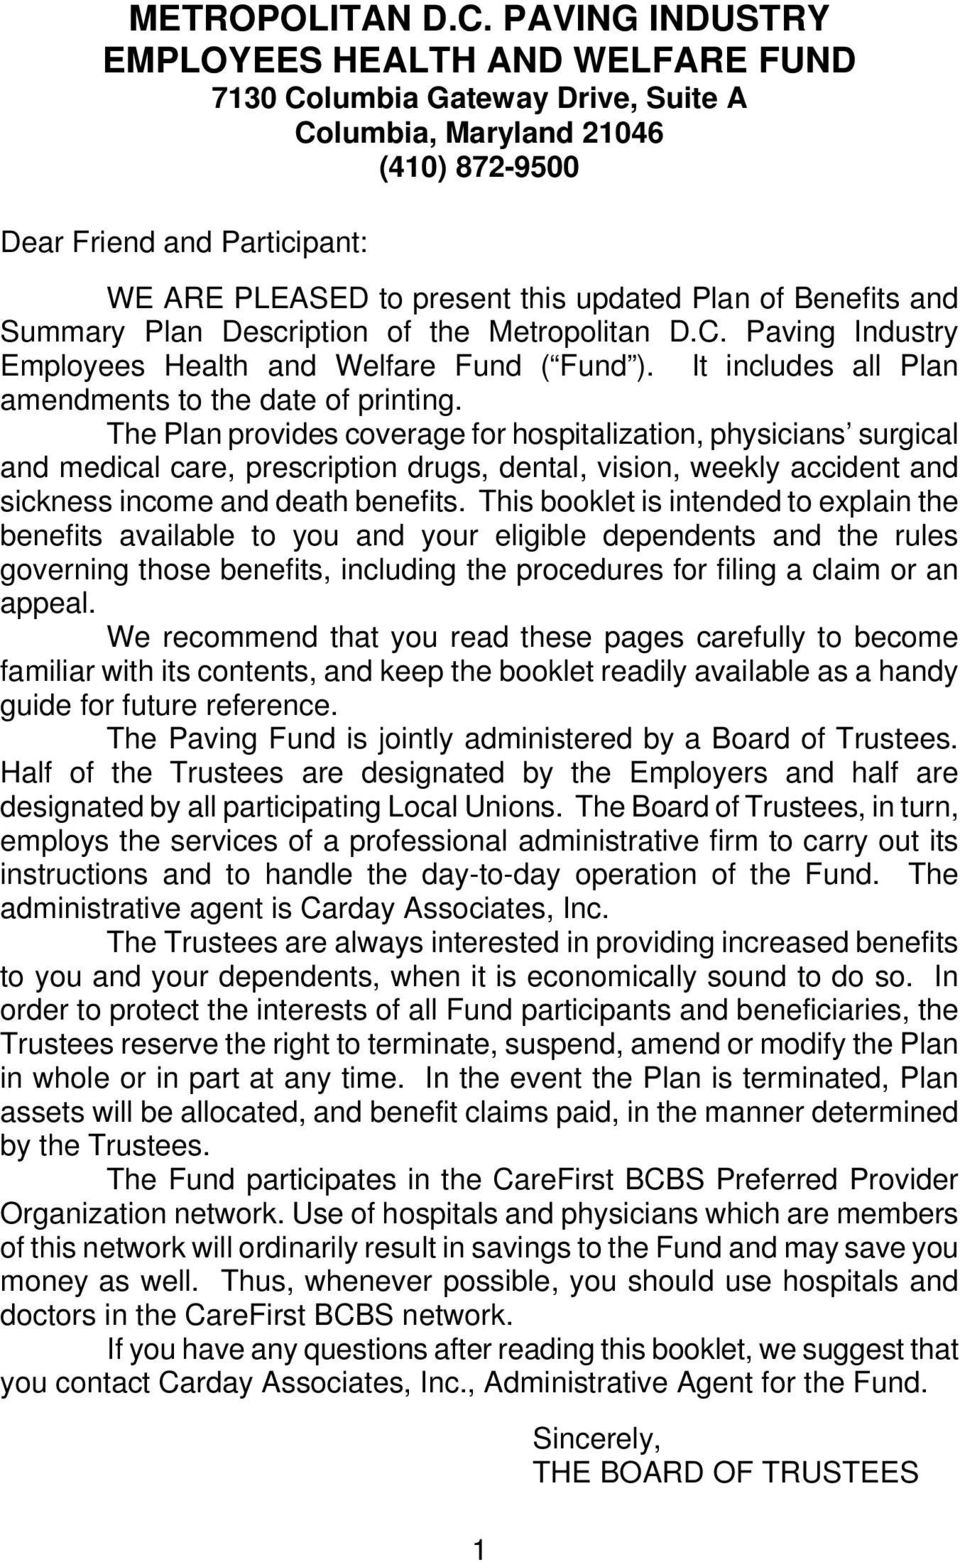 of Benefits and Summary Plan Description of the Metropolitan D.C. Paving Industry Employees Health and Welfare Fund ( Fund ). It includes all Plan amendments to the date of printing.